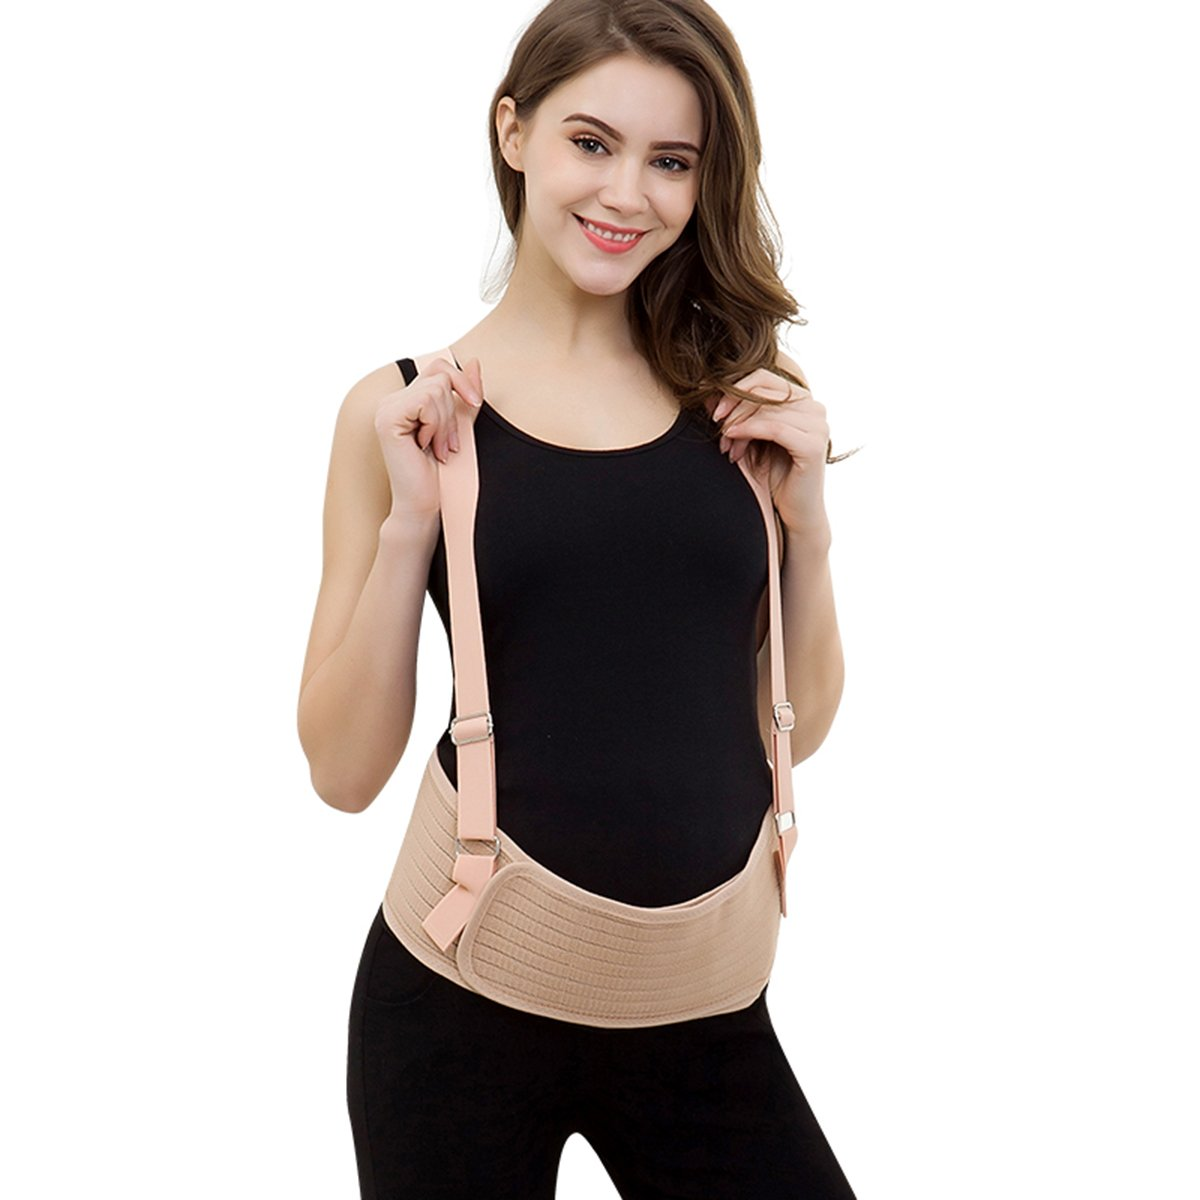 Padgett care Maternity belt for Back Support and Abdominal Pain Relief During Pregnancy,Summer Breathable Lightweight Soft and Adjustable,helps ease the discomfort of pregnancy by supporting your baby